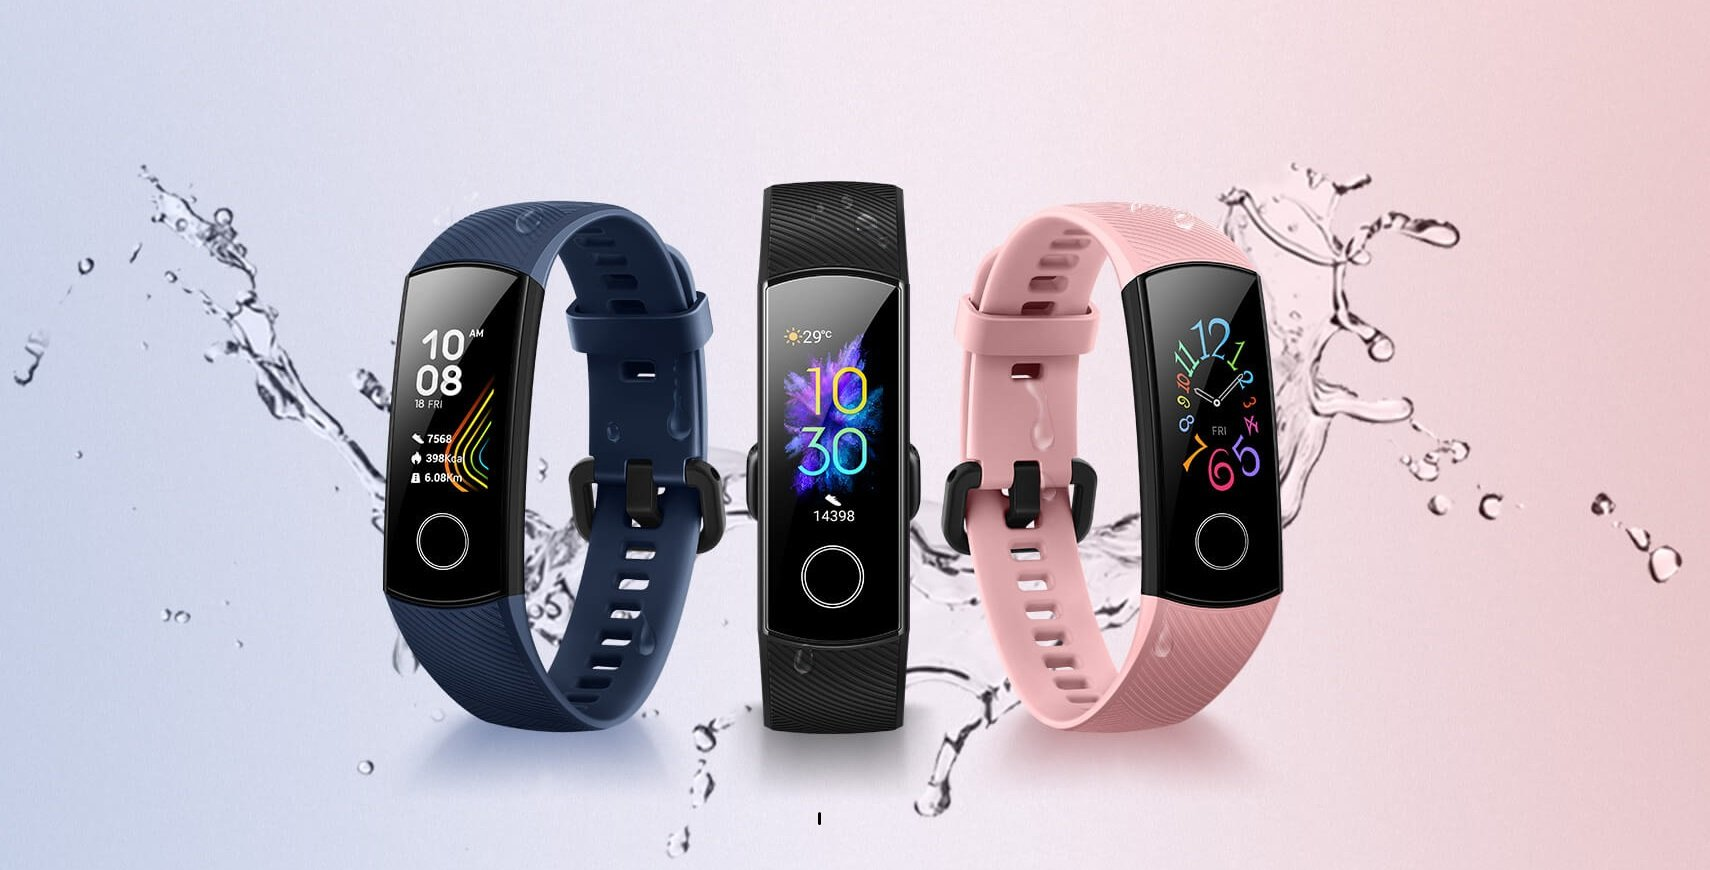 Use Huawei HONOR Band 5 Smartwatch In This Self-Isolation To Stay Healthy